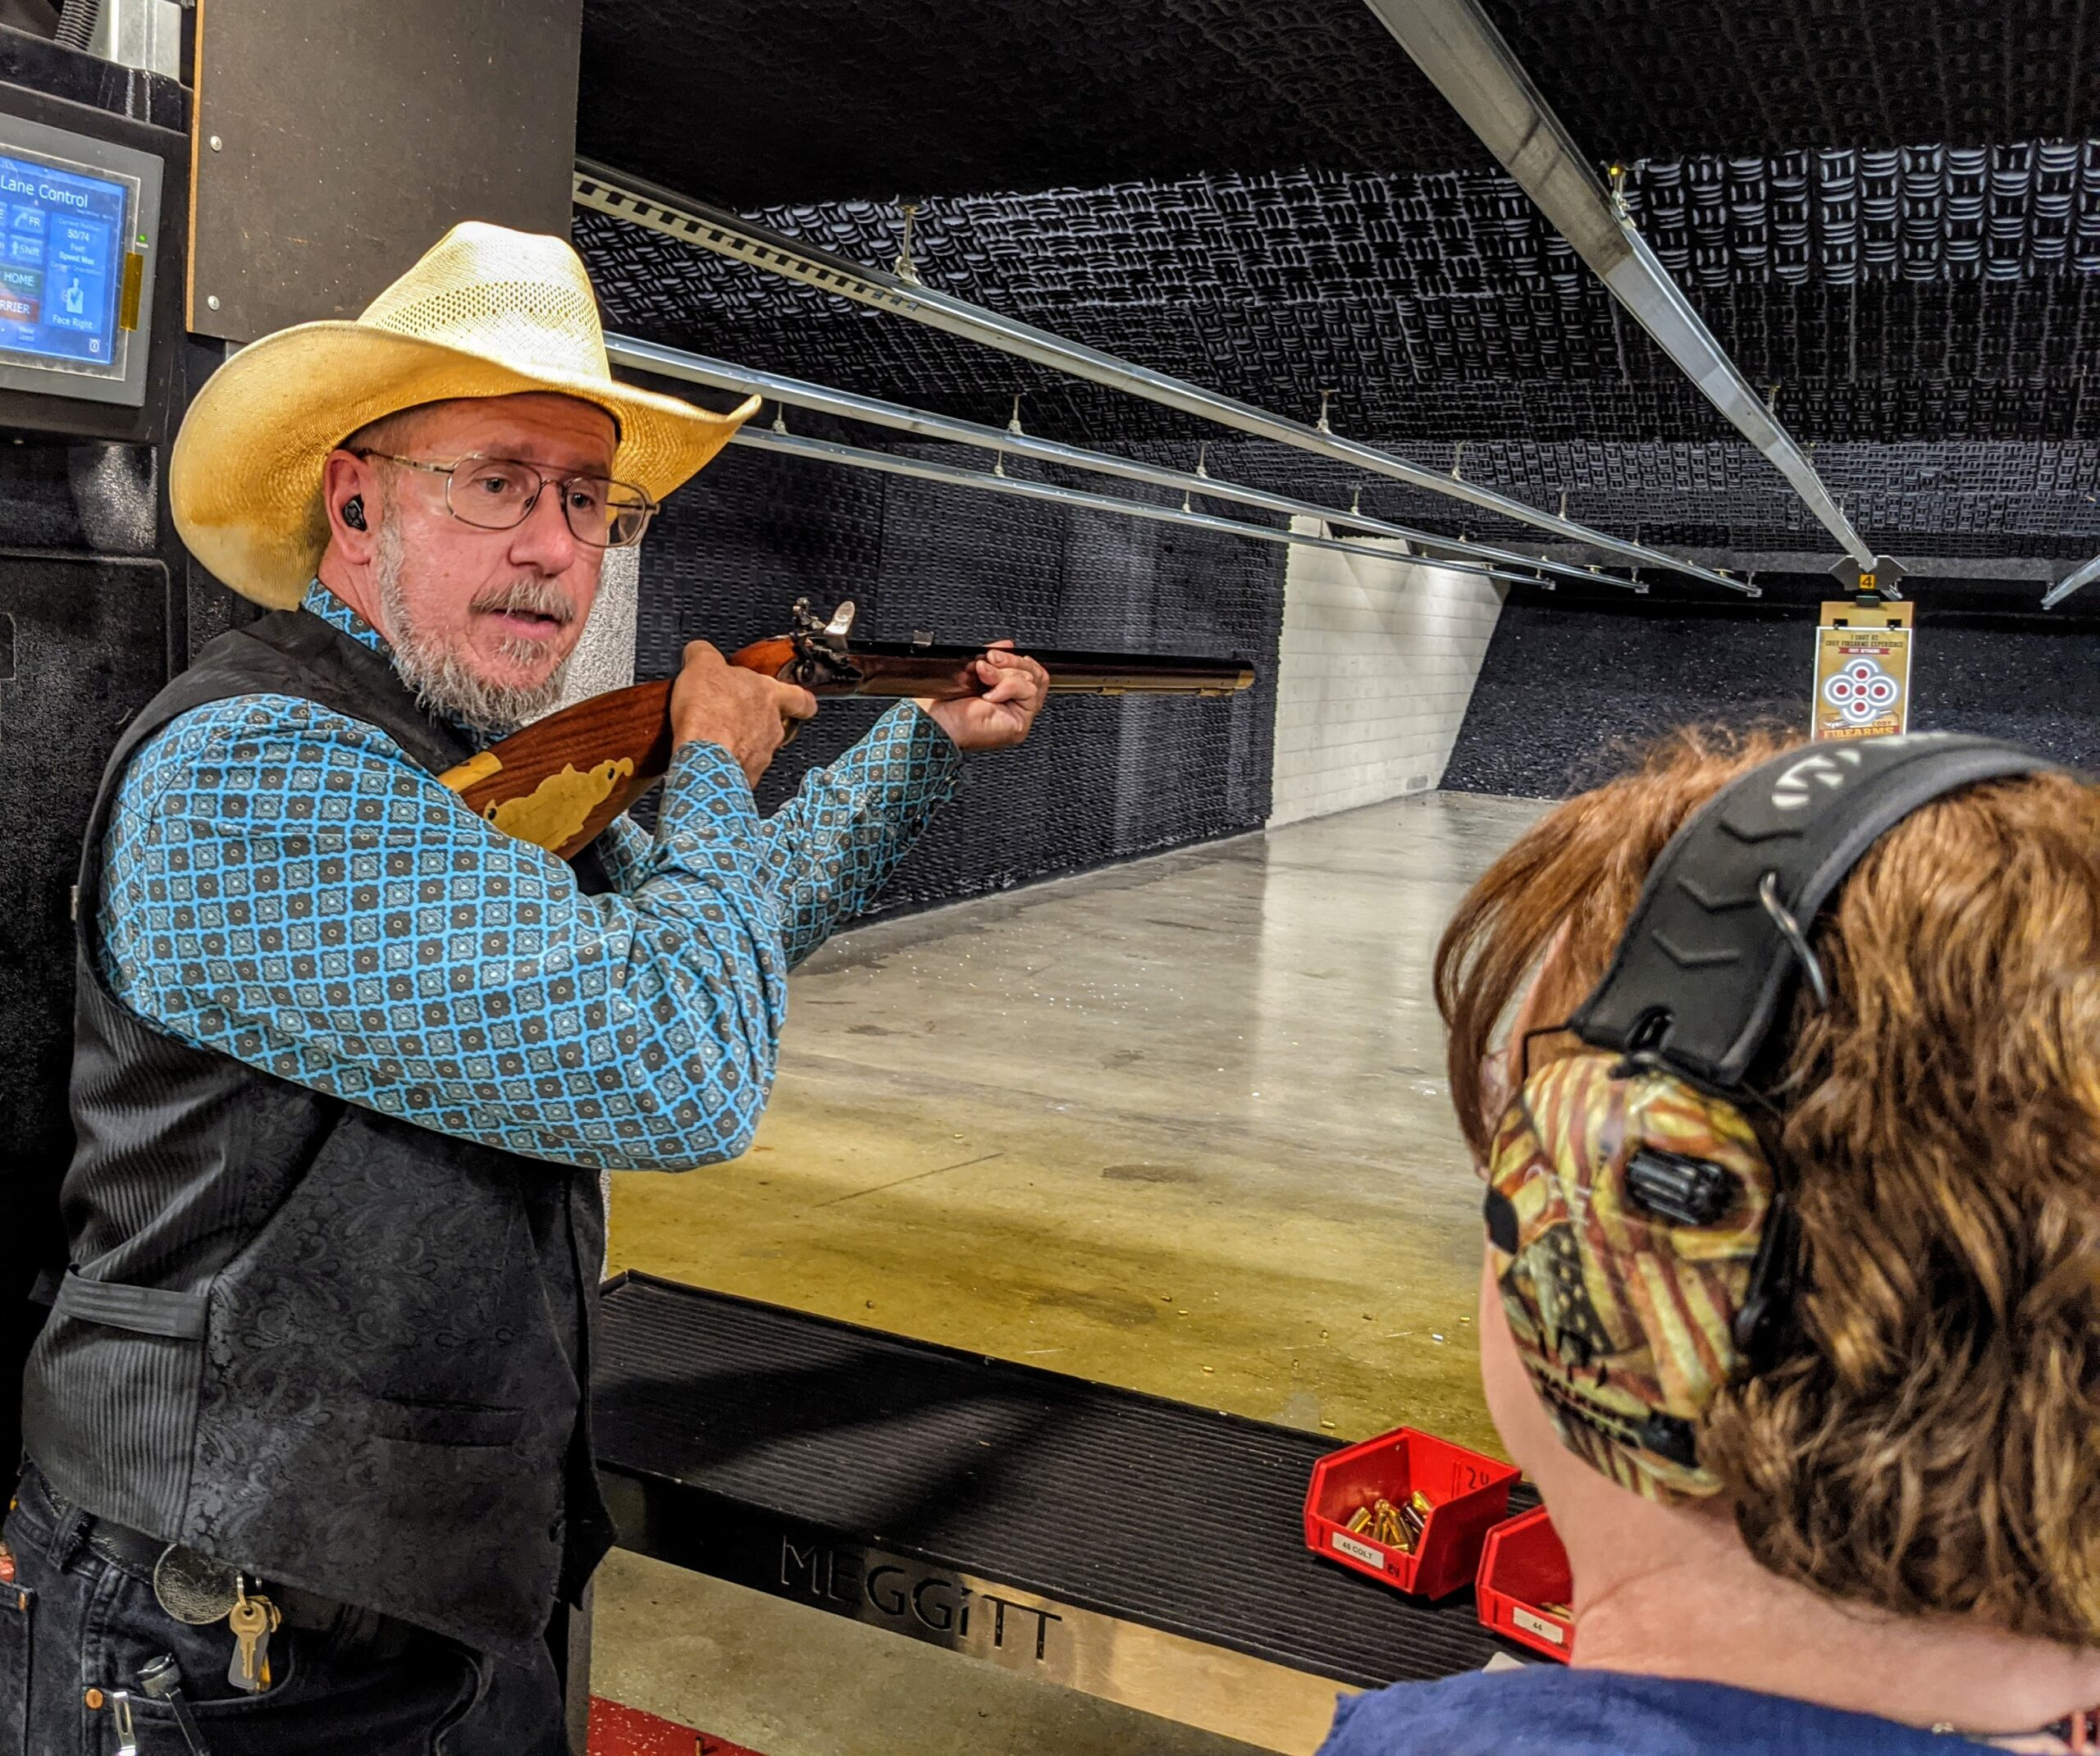 Range manager demonstrates the proper way to shoot an 1800s rifle.